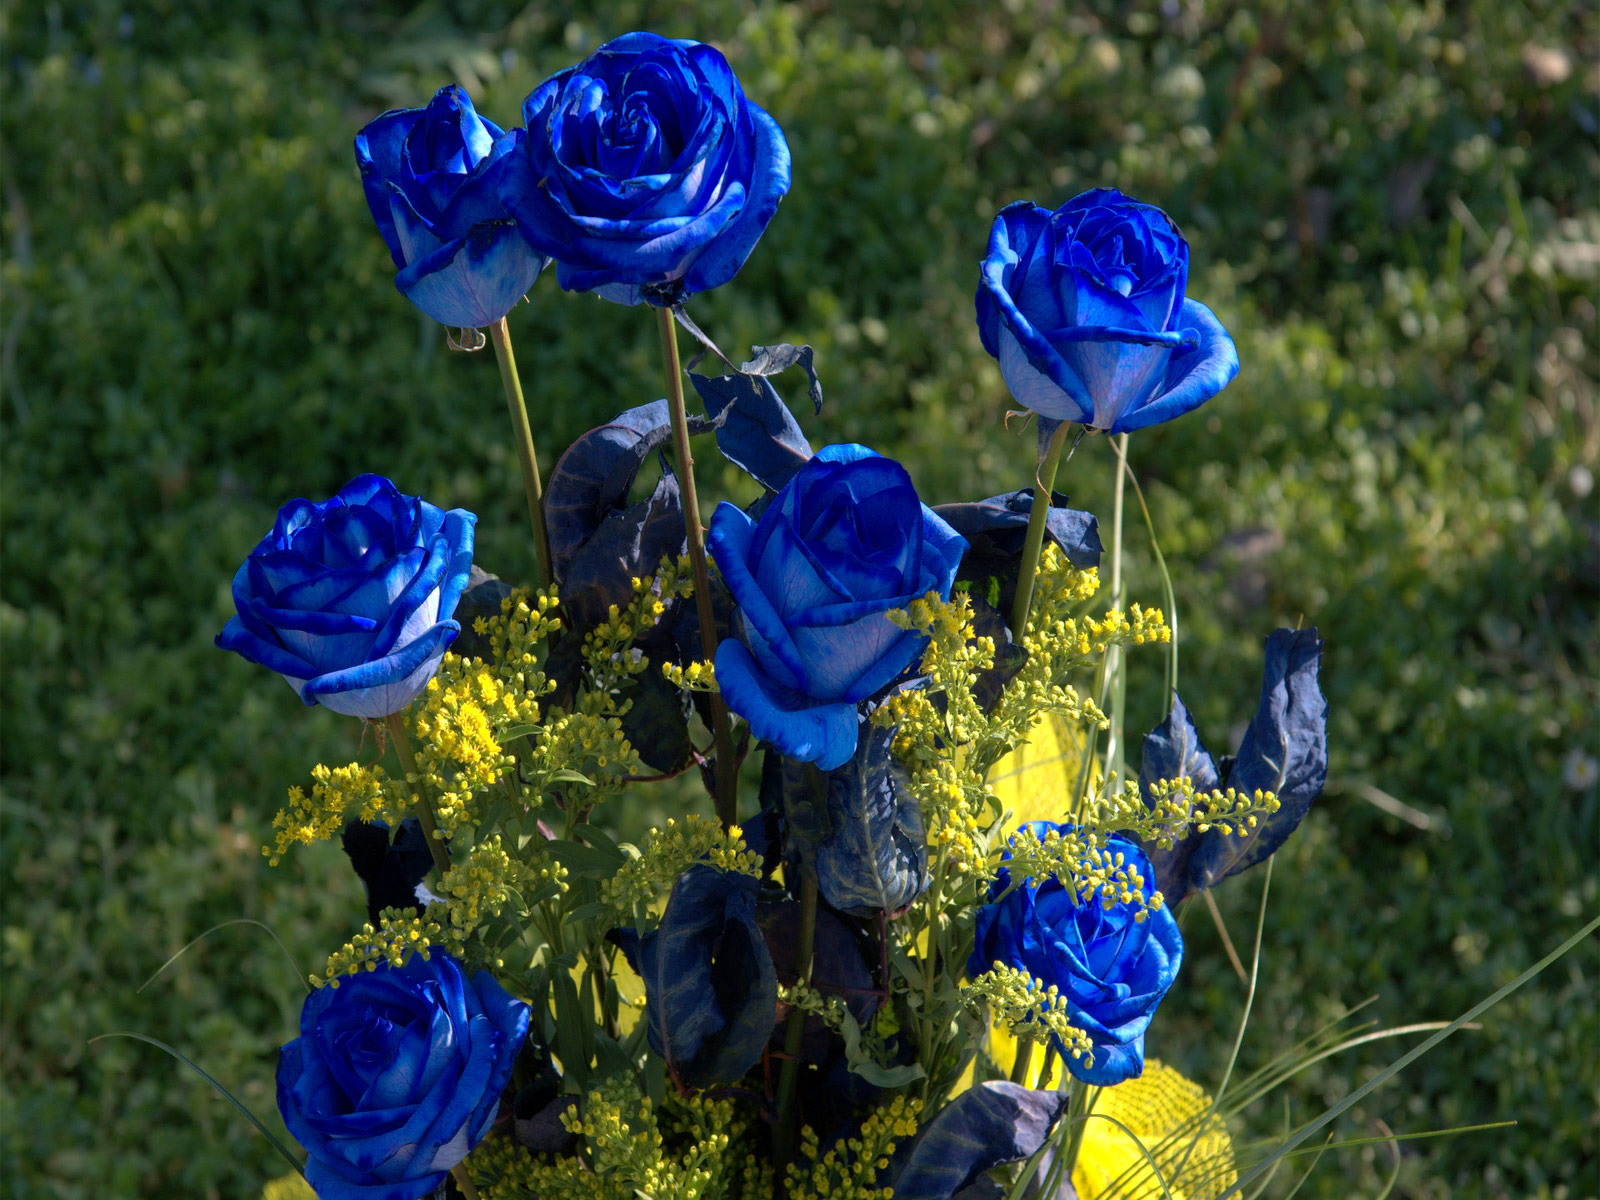 Chaska pictures blue flowers blue roses clips blue roses review blue roses images blue roses online roses blue roses meaning pictures of blue roses blue roses plants izmirmasajfo